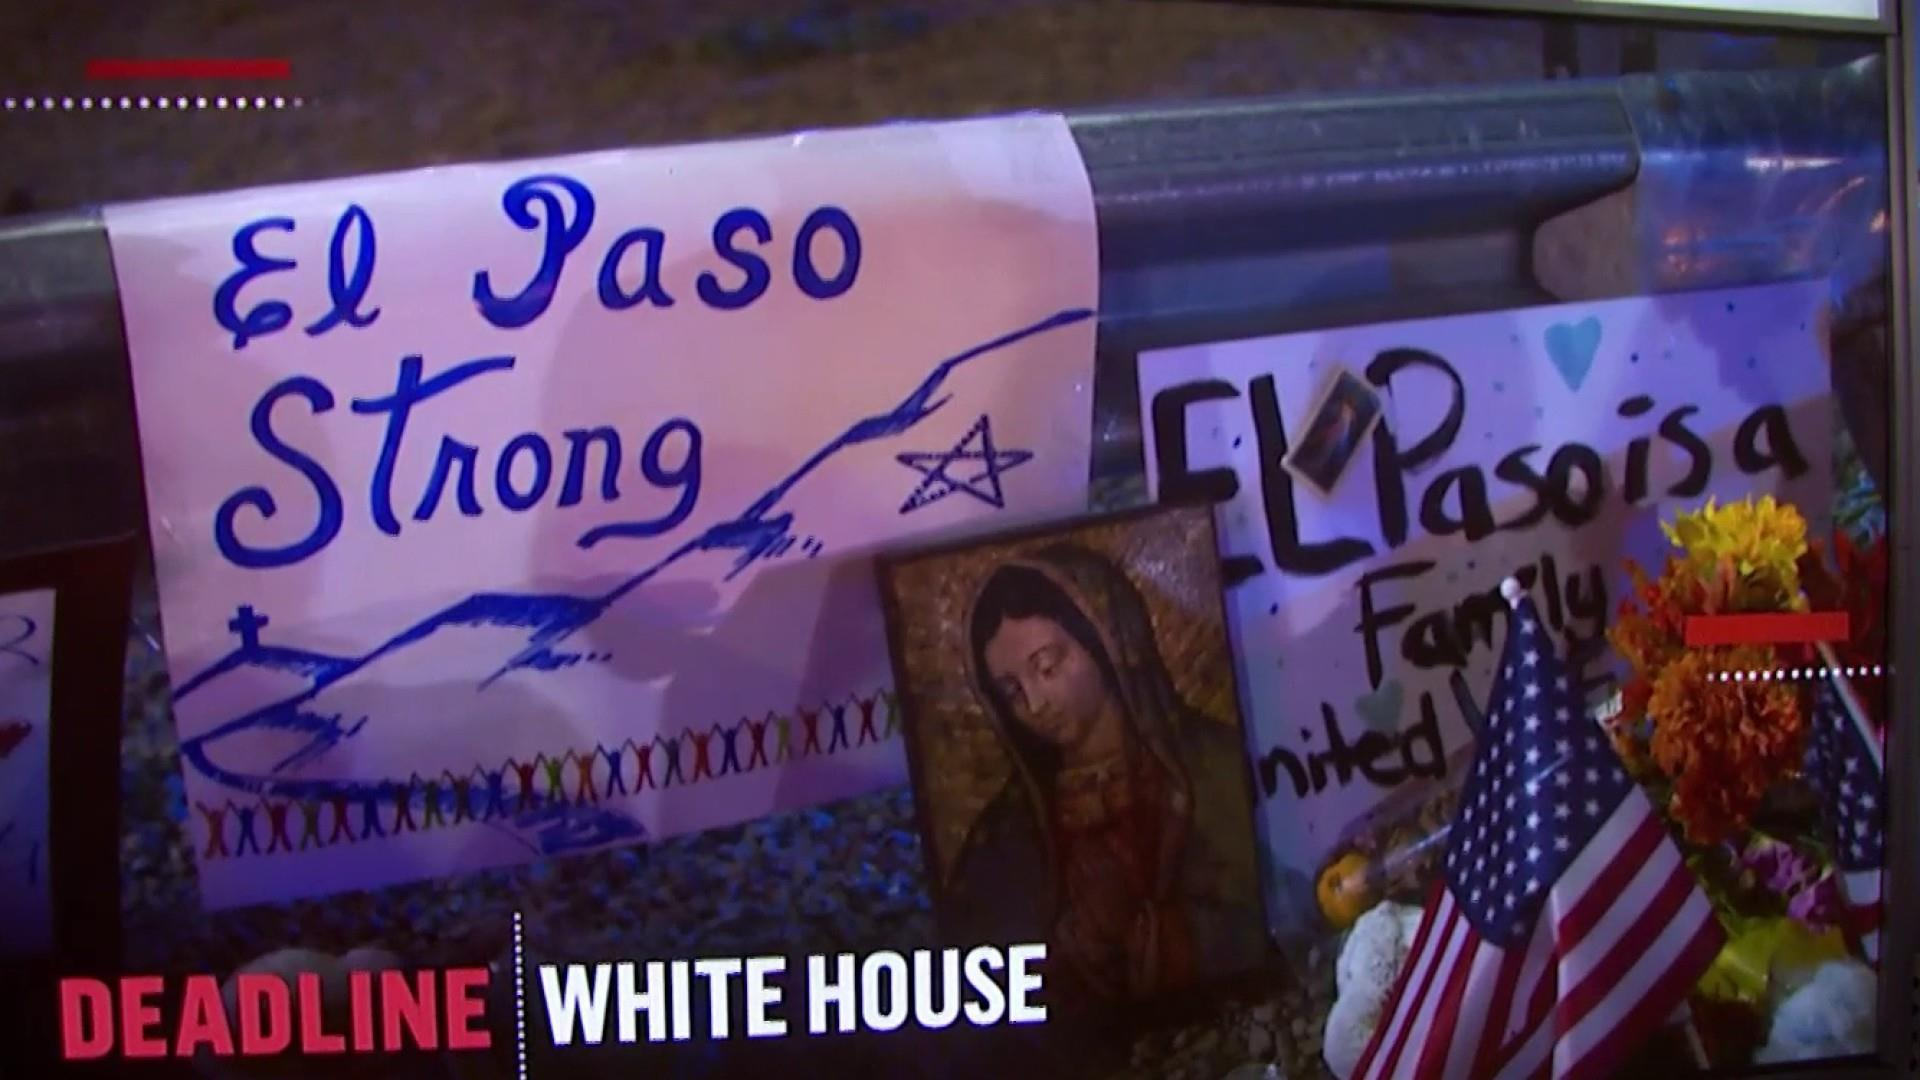 'El Paso is a community where… there is no border'